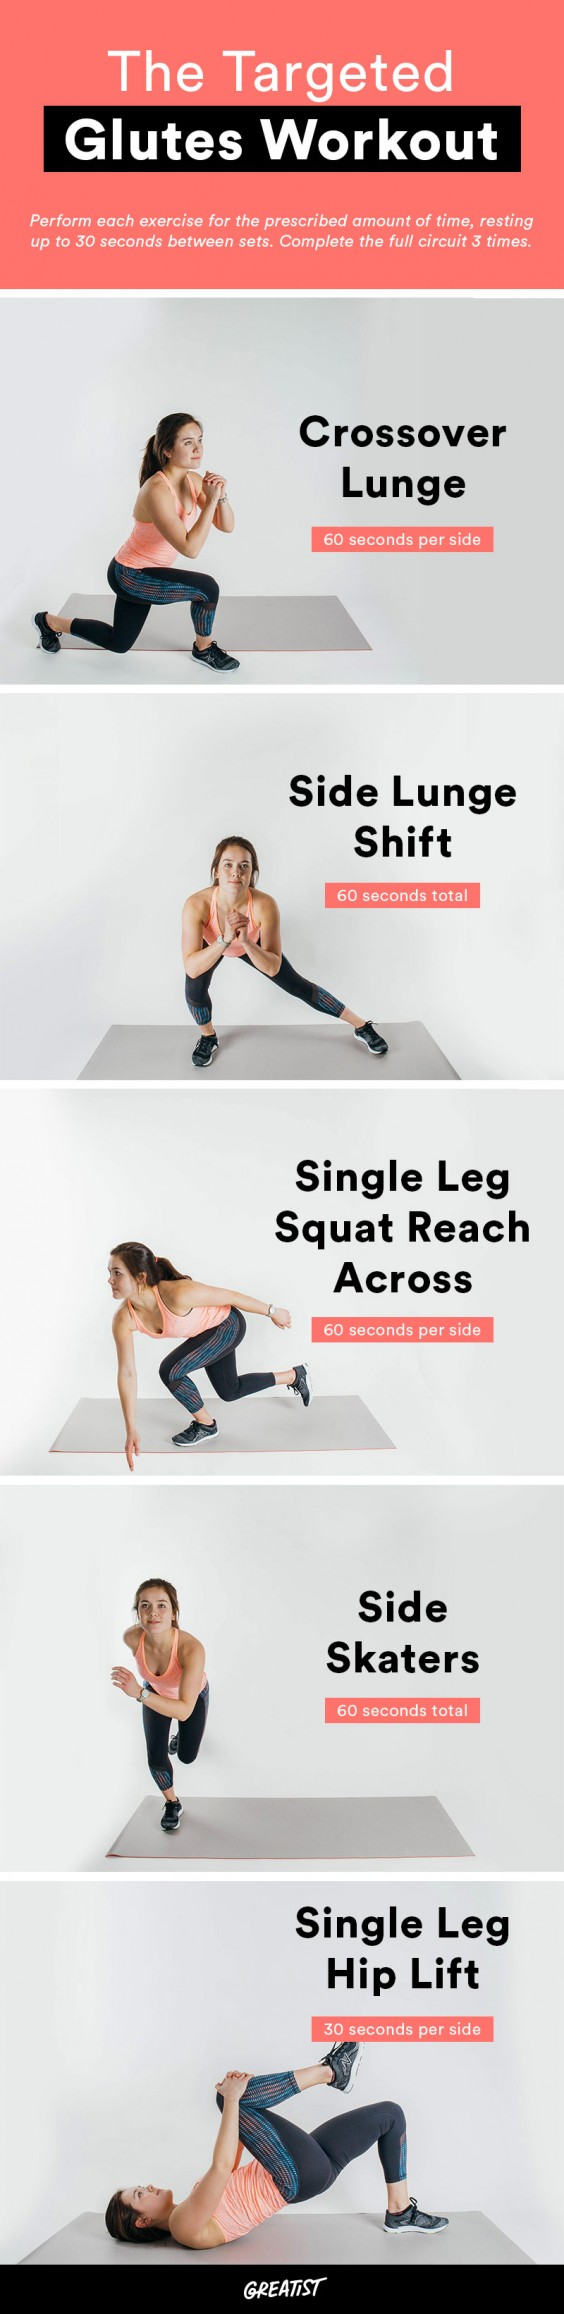 best butt exercises: workout